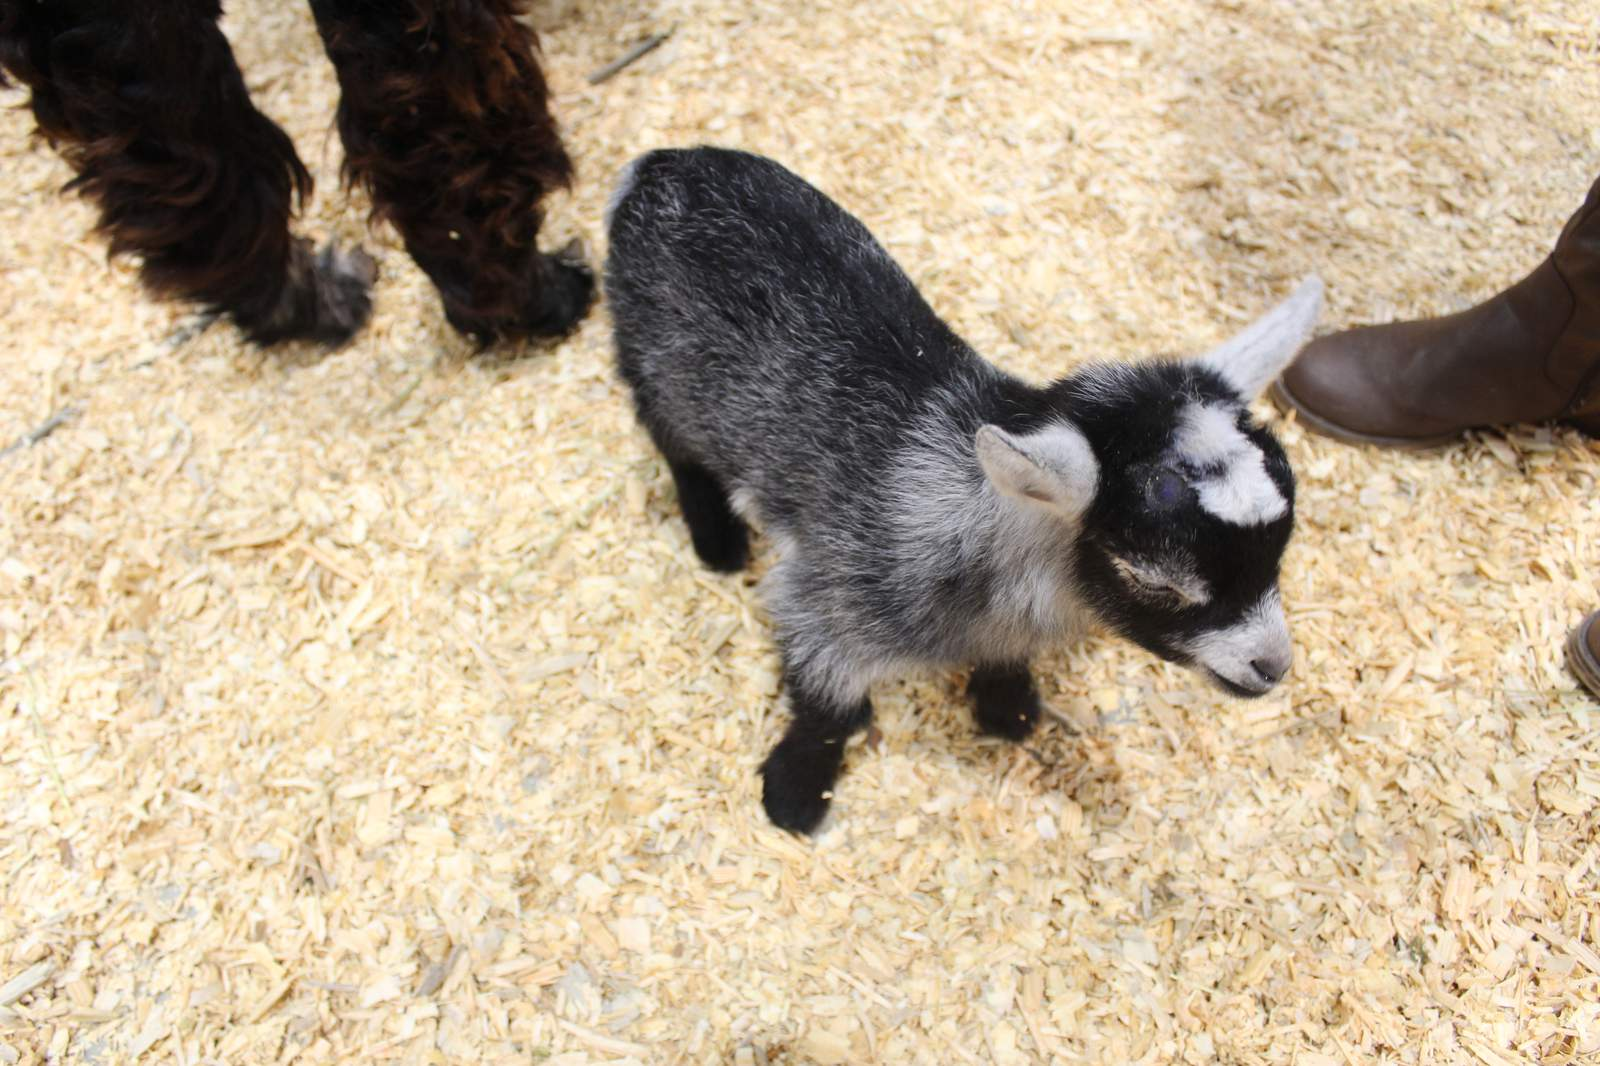 These Are Just A Few Of The Adorable Baby Animals You Can See Pet At Rodeohouston